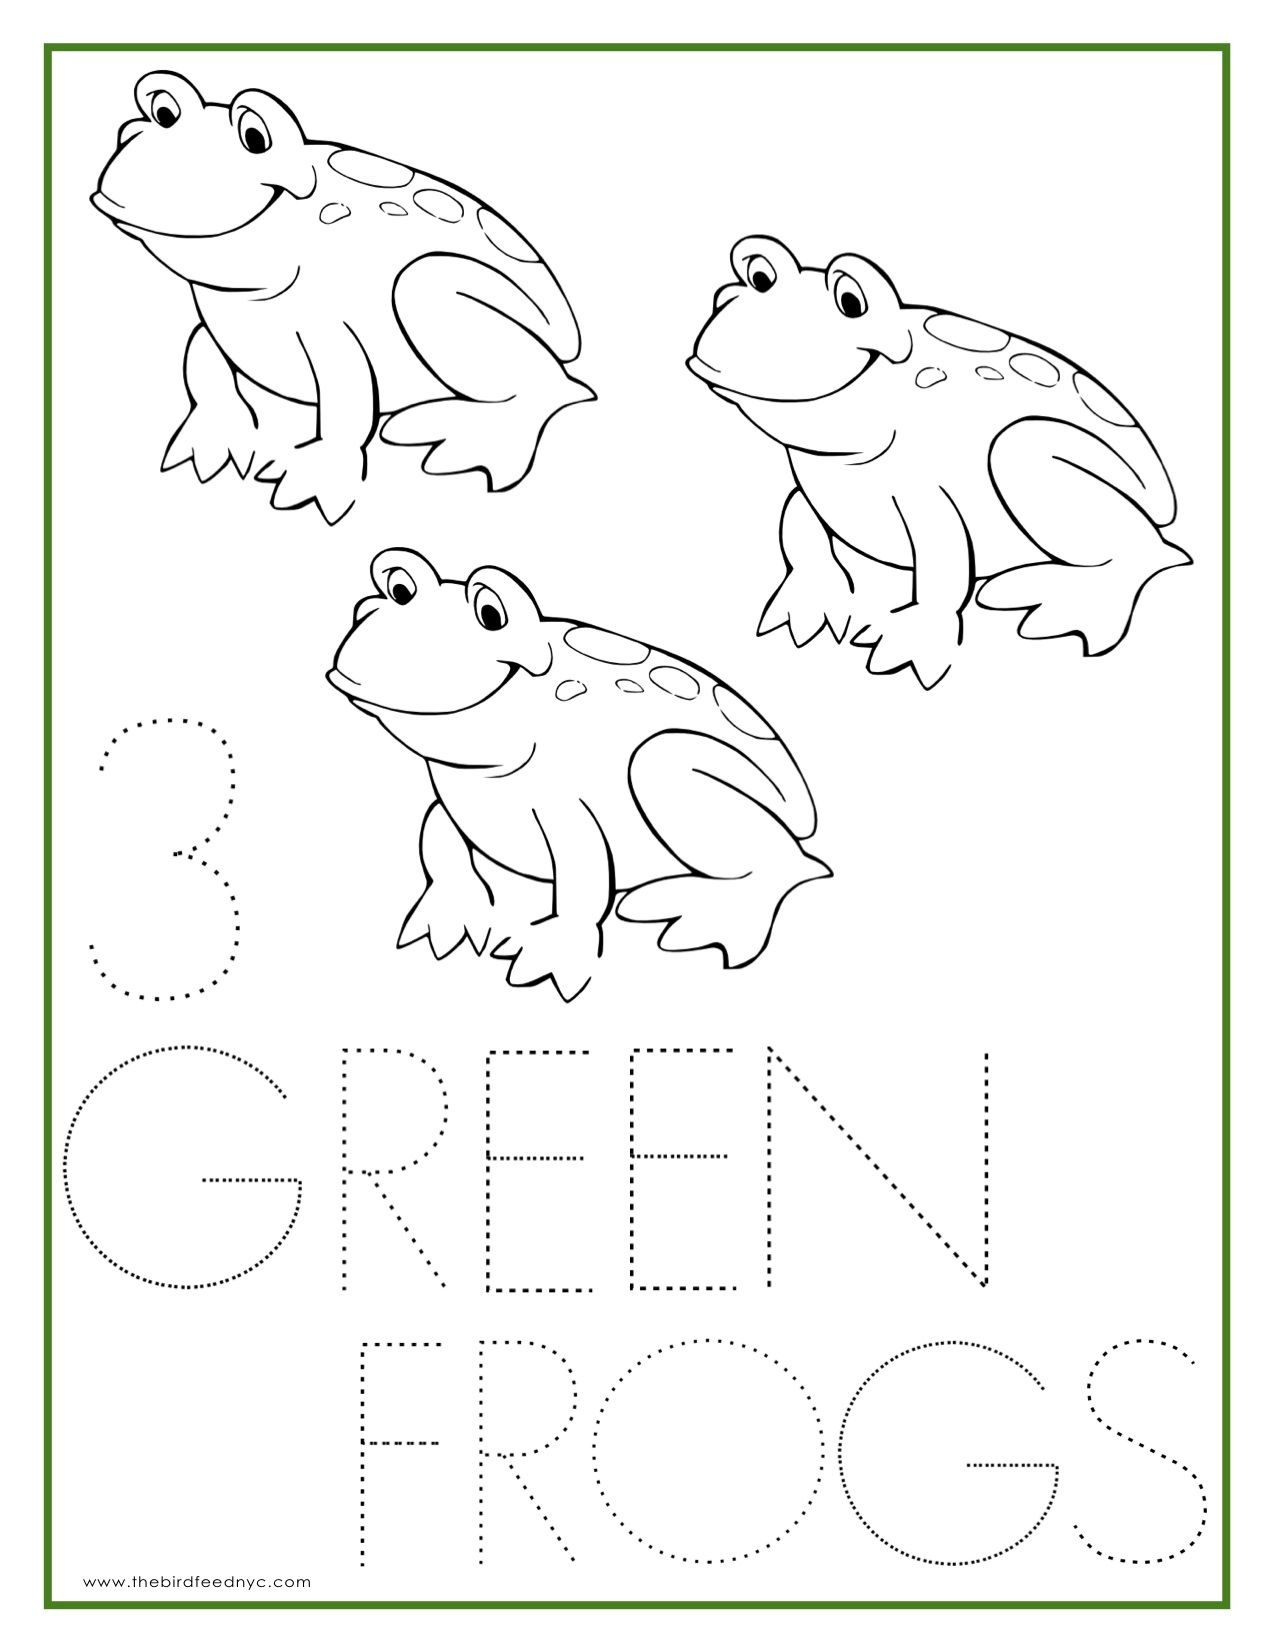 Number Coloring Sheet 3 Green Frogs With Images Coloring